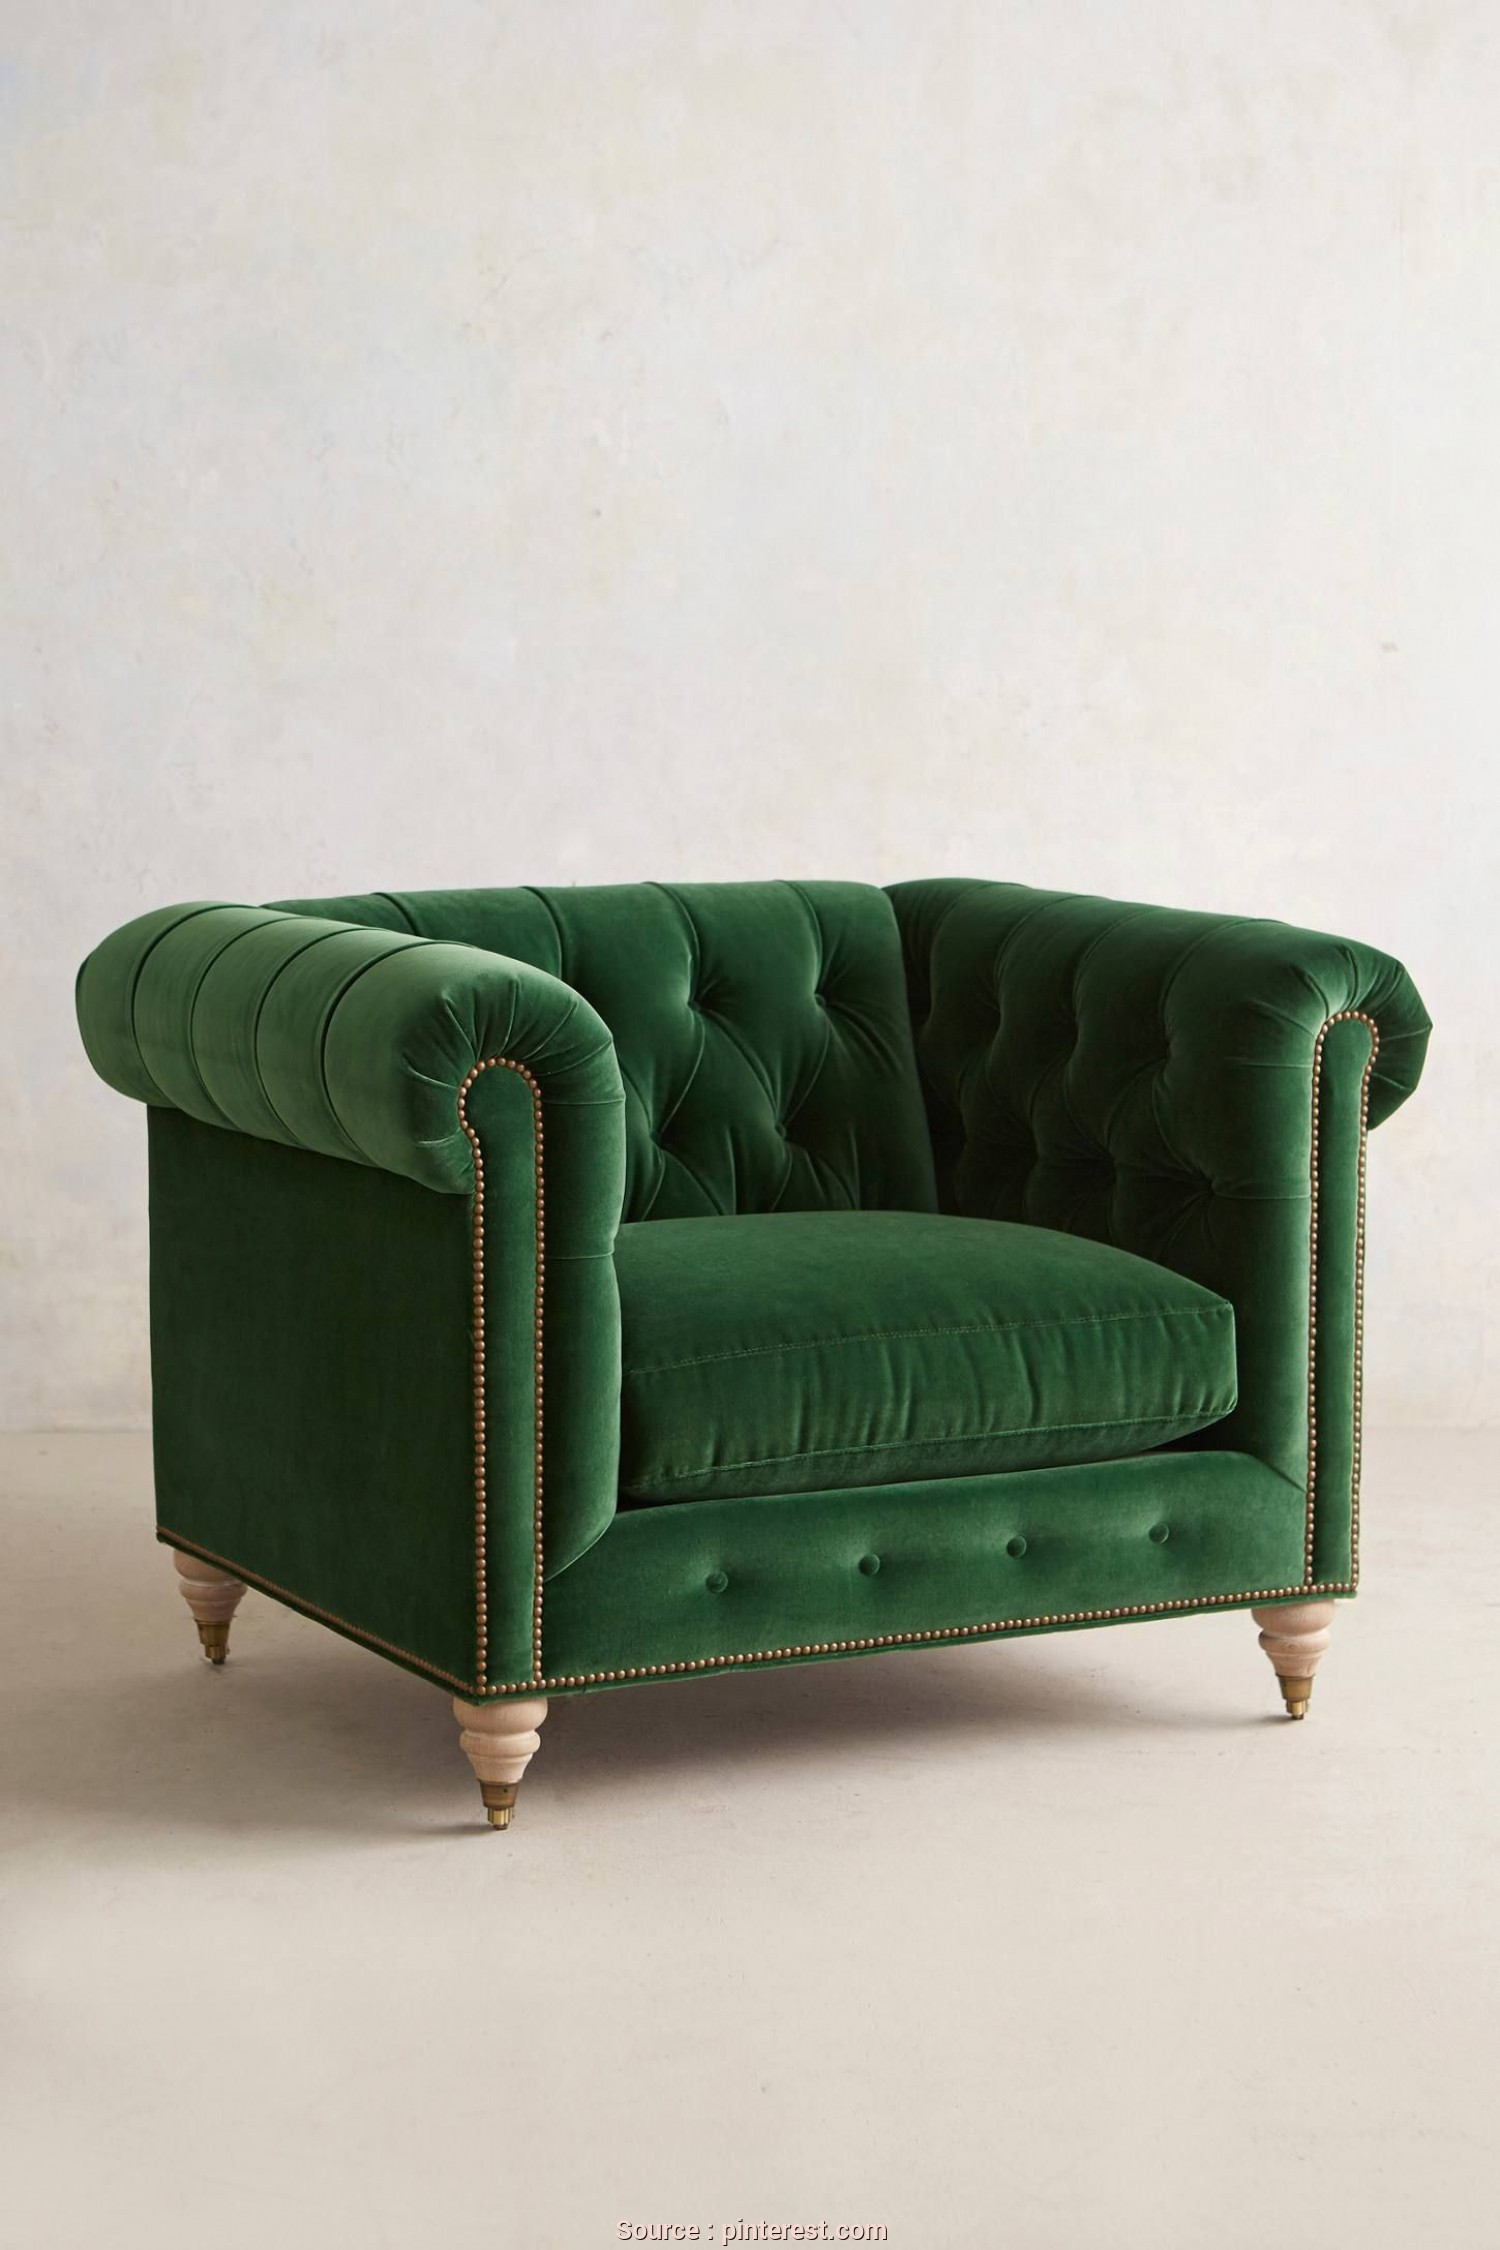 Divano Canapè Cruciverba, Eccellente We Claim This Reading Chair Now., Downton Abbey, As Seen On Masterpiece PBS